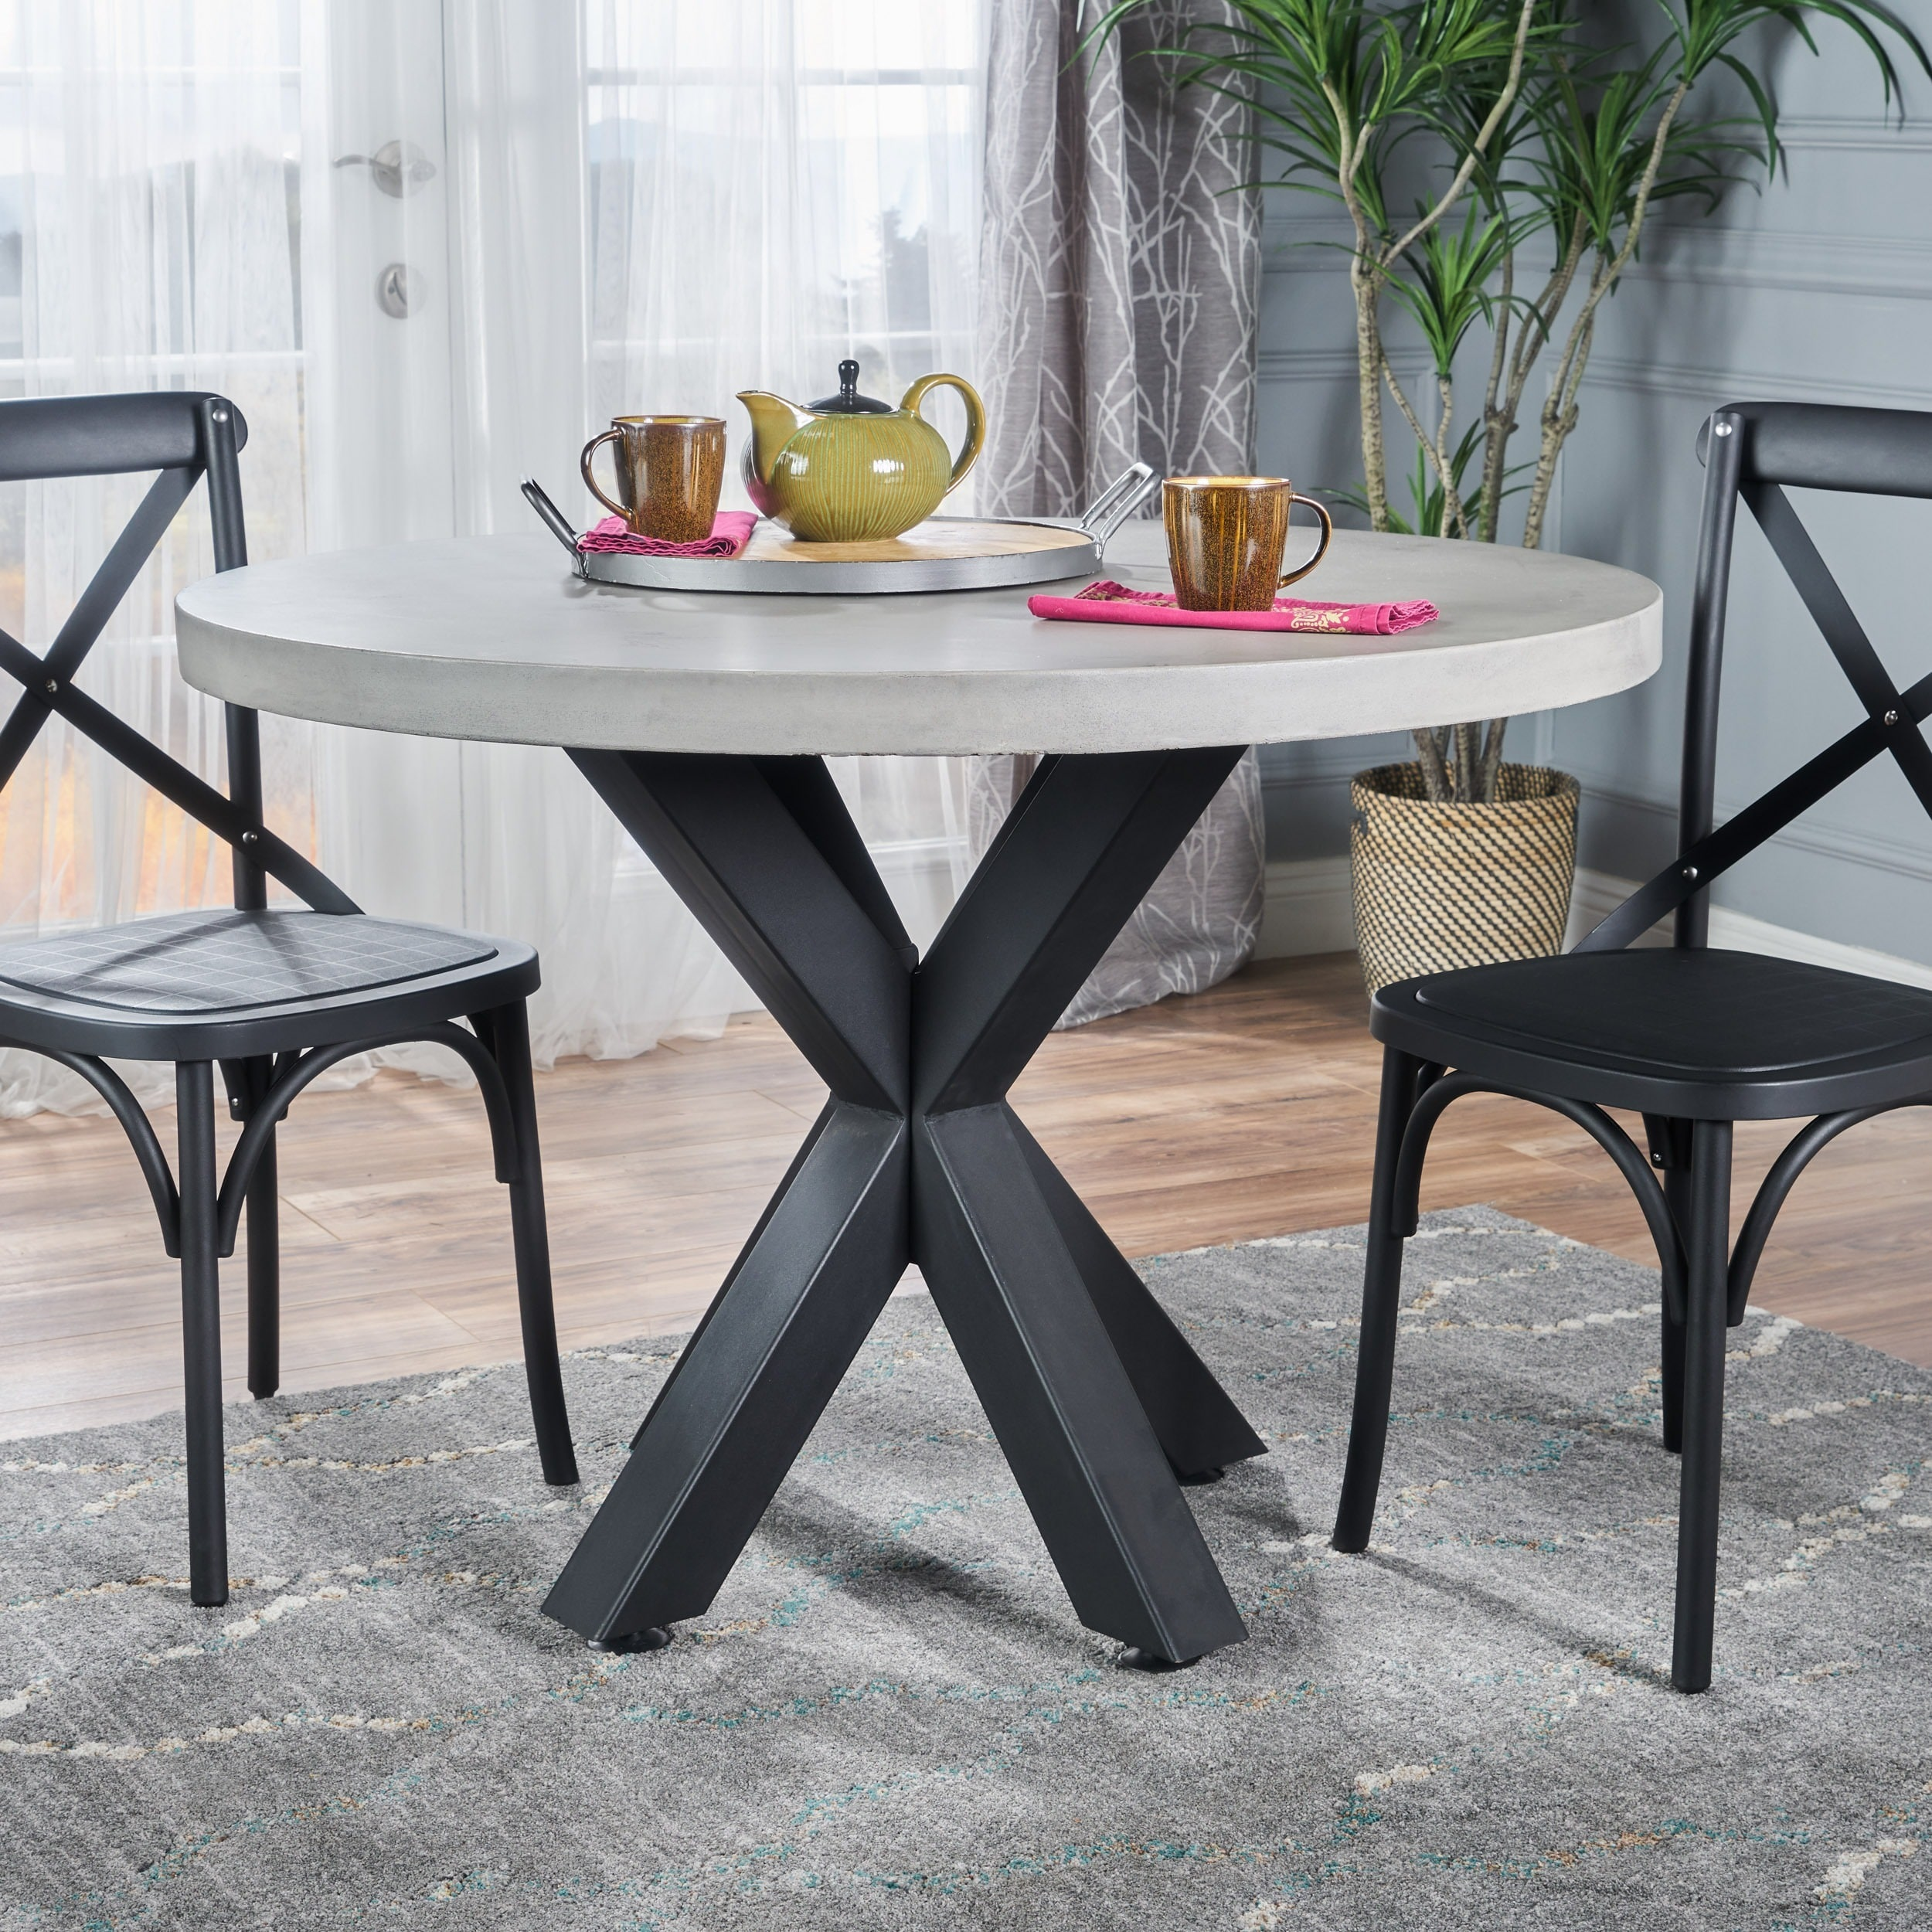 Teague round light weight concrete dining table by christopher teague round light weight concrete dining table by christopher knight home off white free shipping today overstock 23054839 watchthetrailerfo